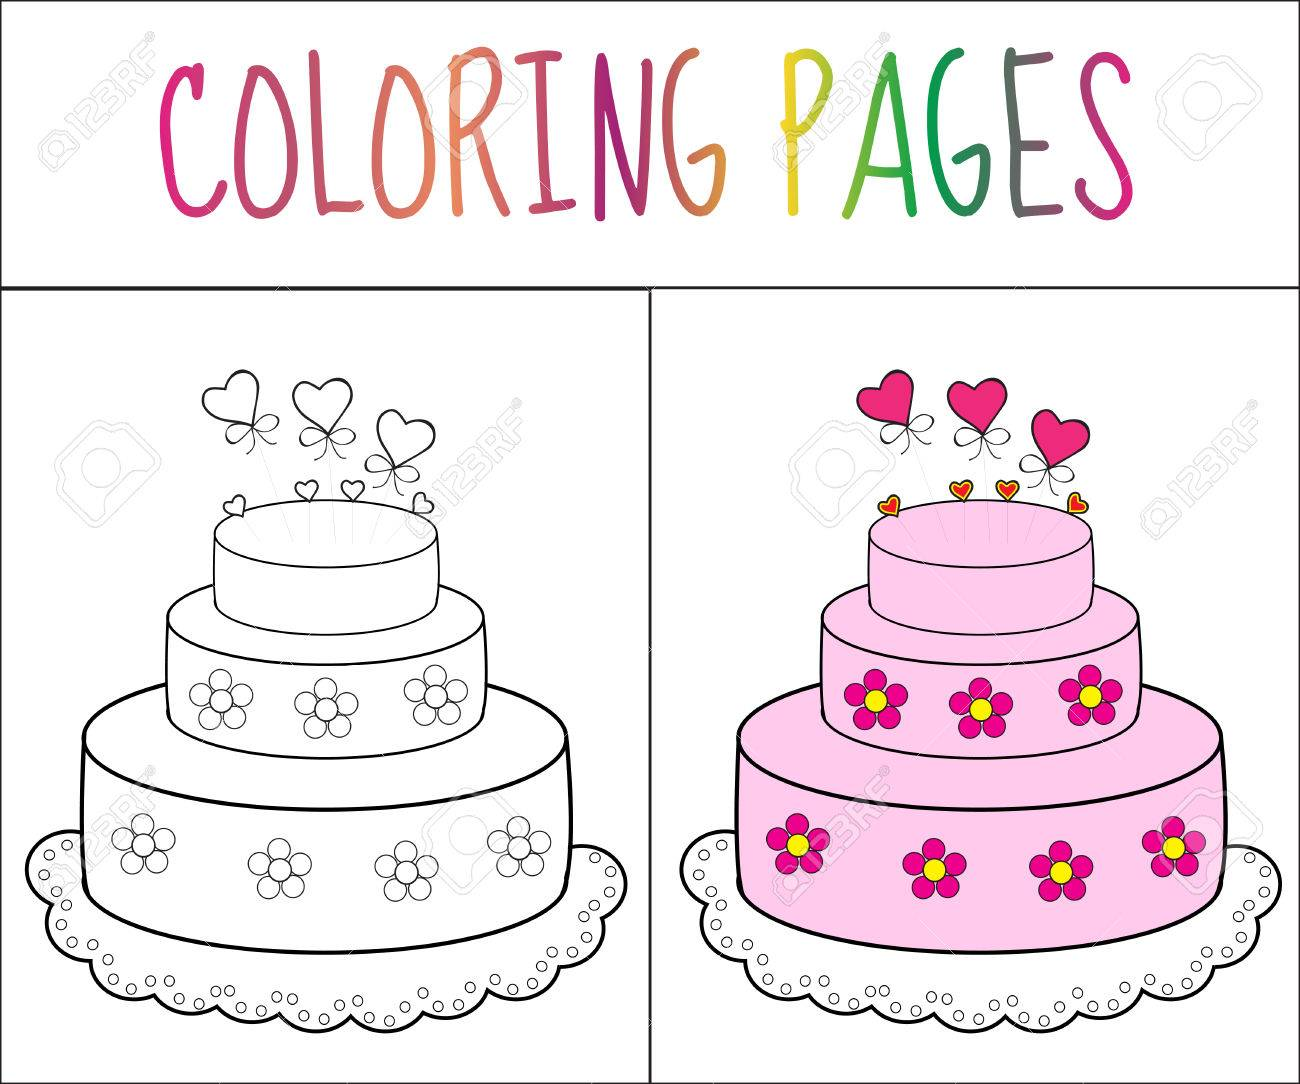 Coloring Book Page Cake. Sketch And Color Version. Coloring For ...